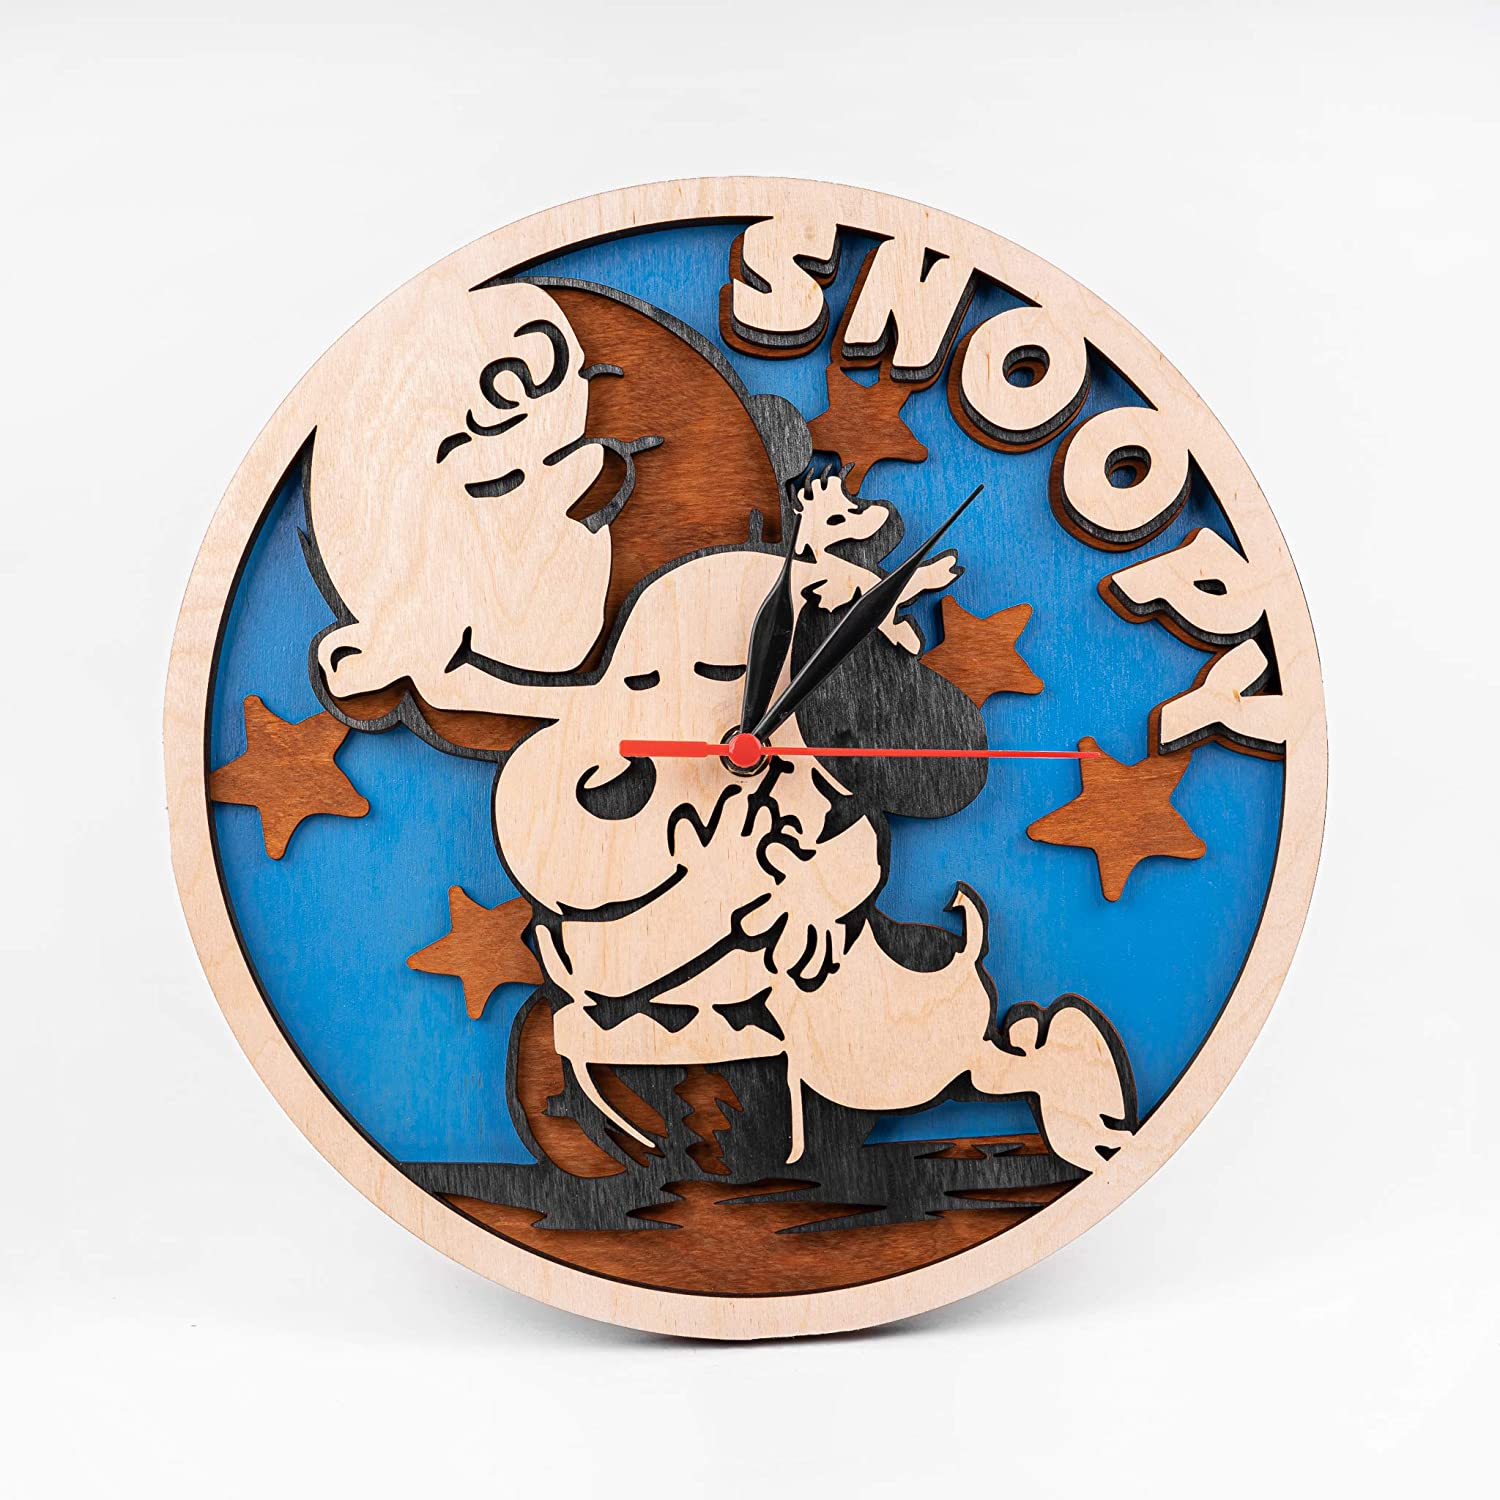 A picture of the snoopy clock to better elaborate Cartoon Clocks: some of the most intriguing 2020